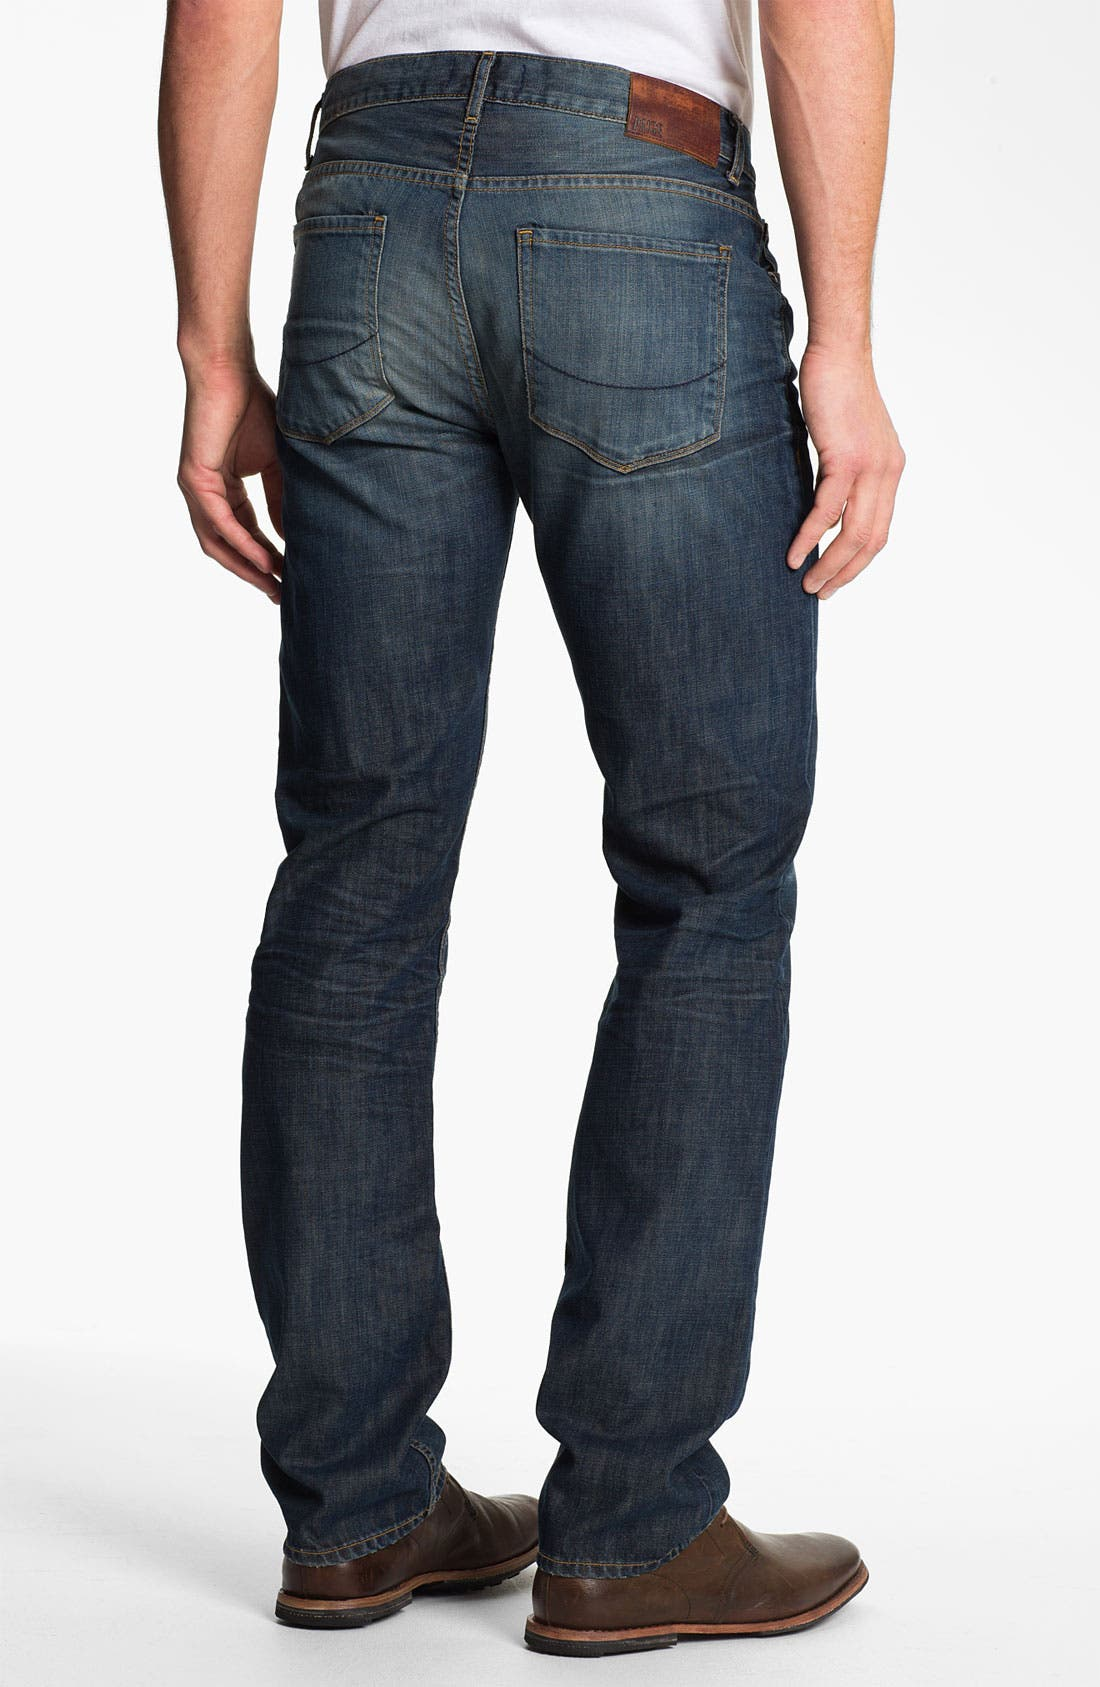 Alternate Image 1 Selected - PAIGE 'Normandie' Slim Straight Leg Jeans (Castaway)